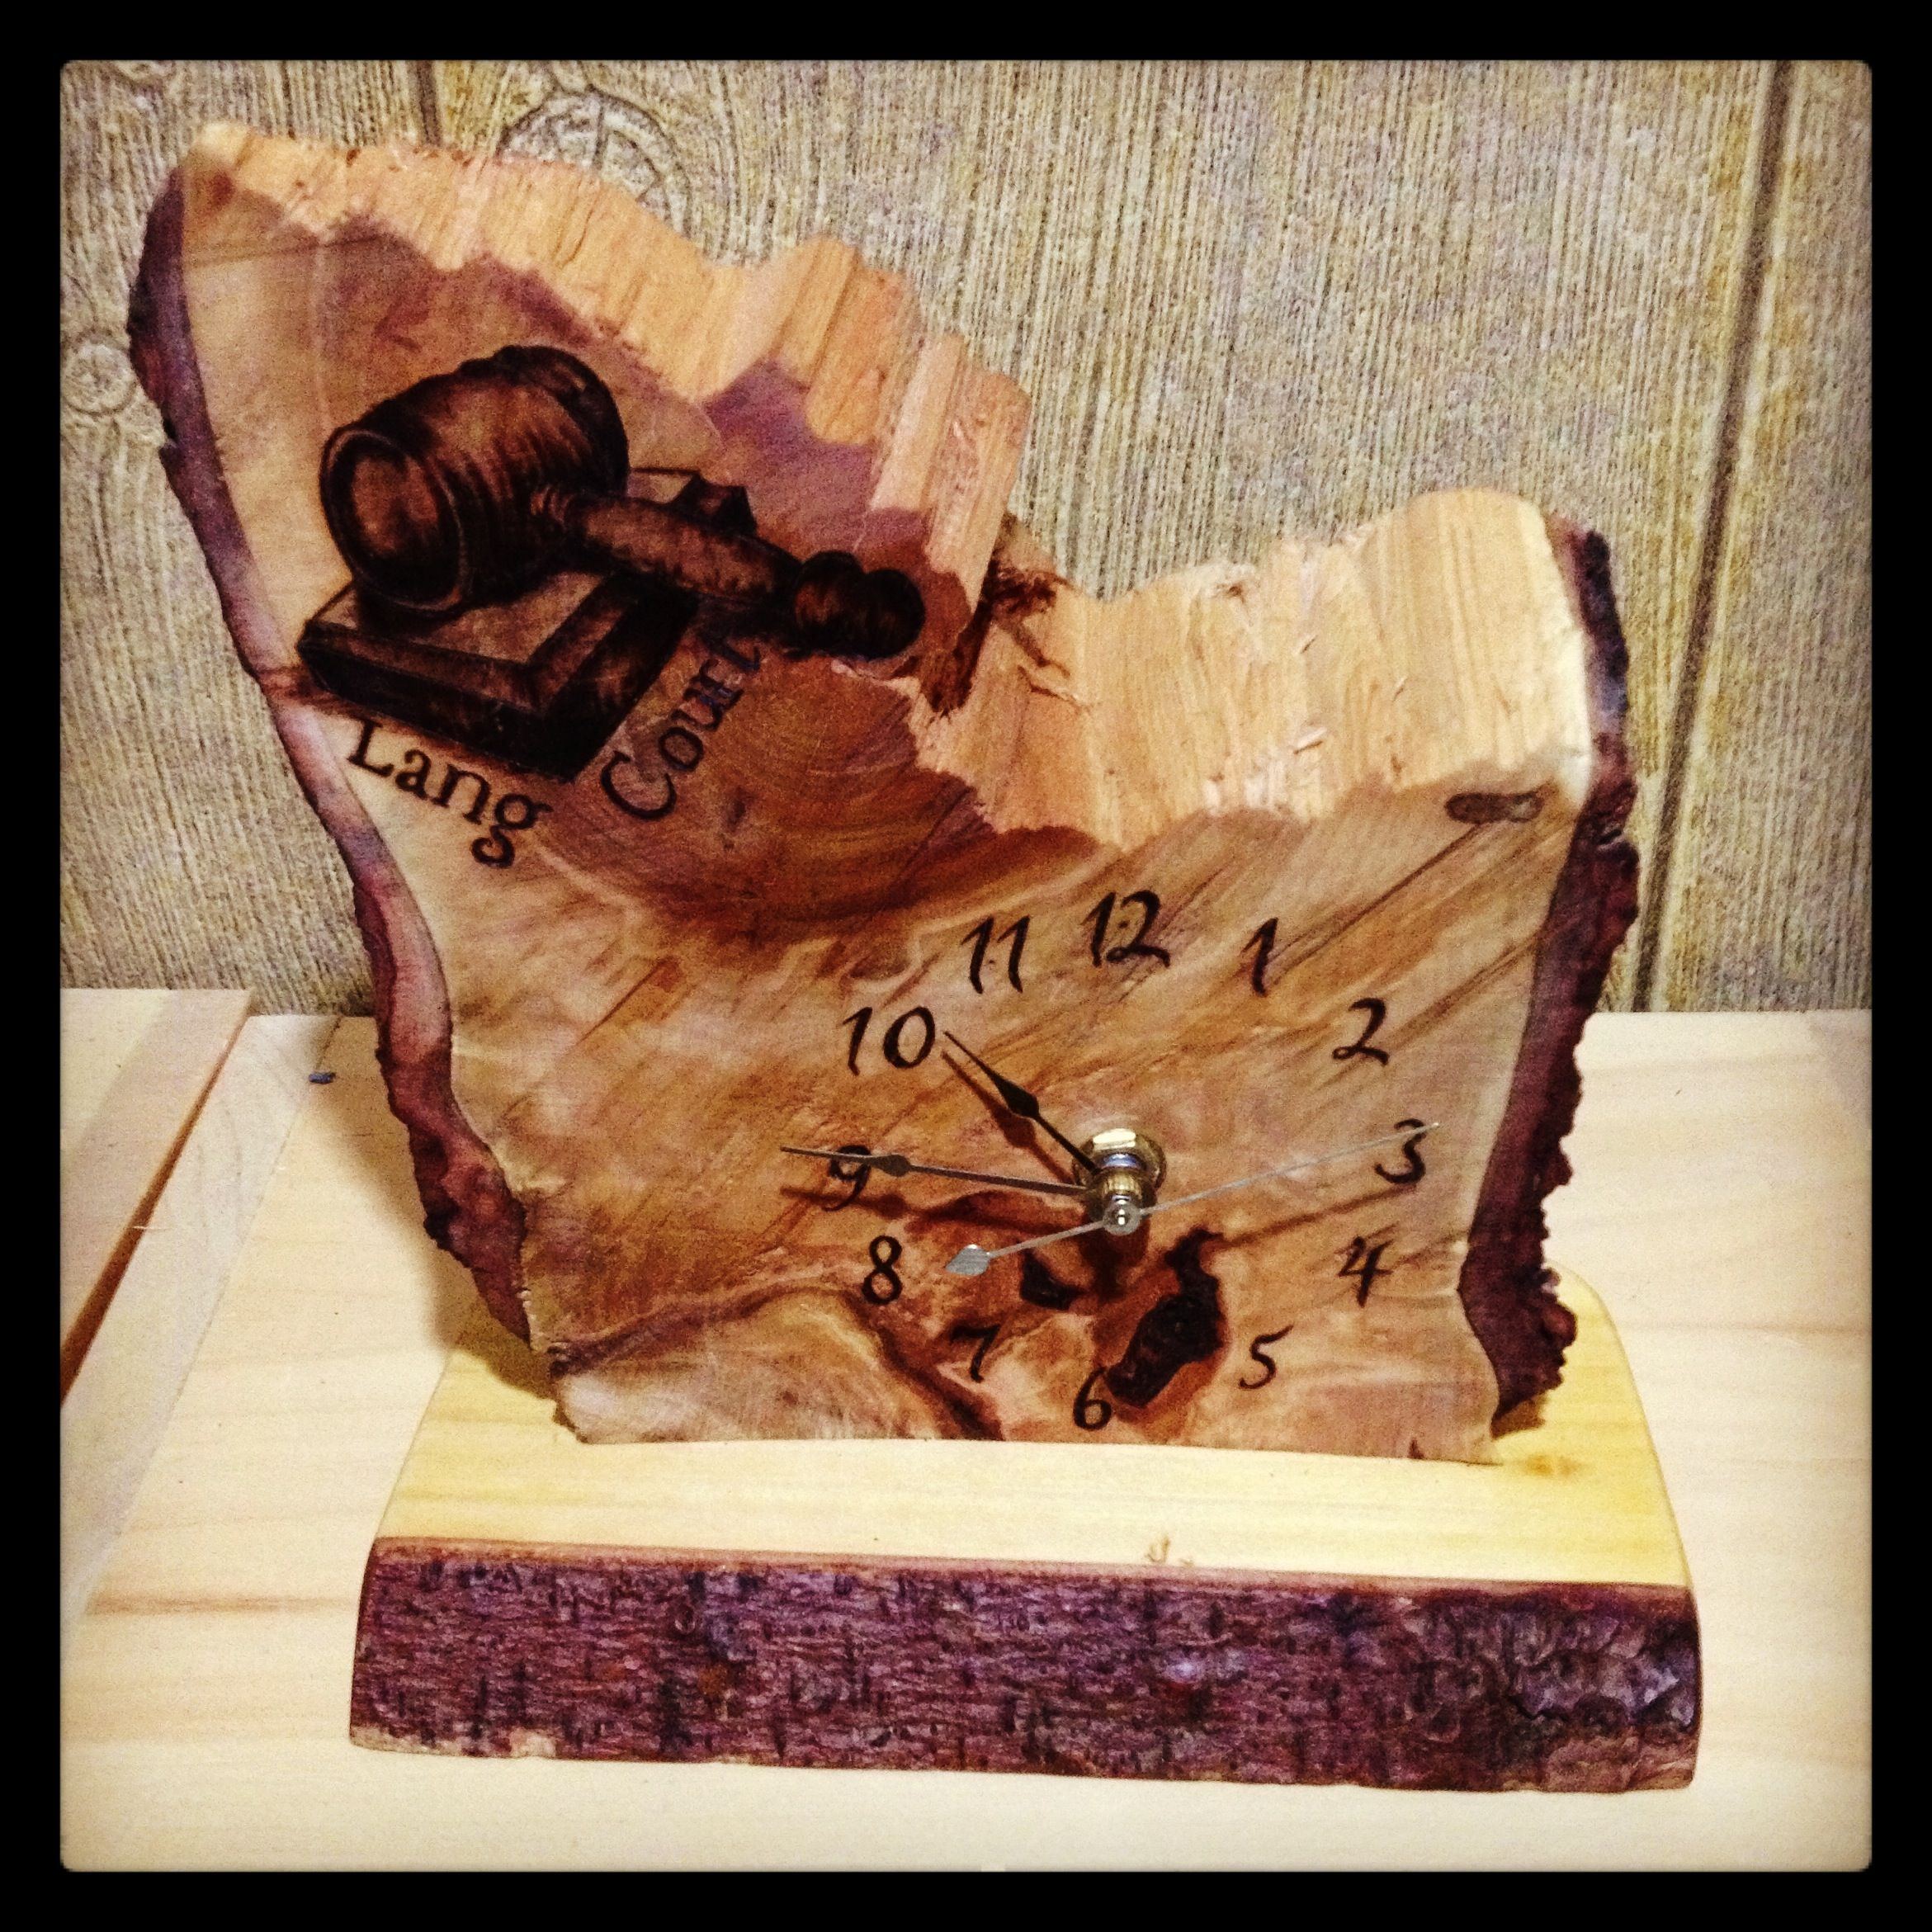 Clock face on reclaimed wood for law office